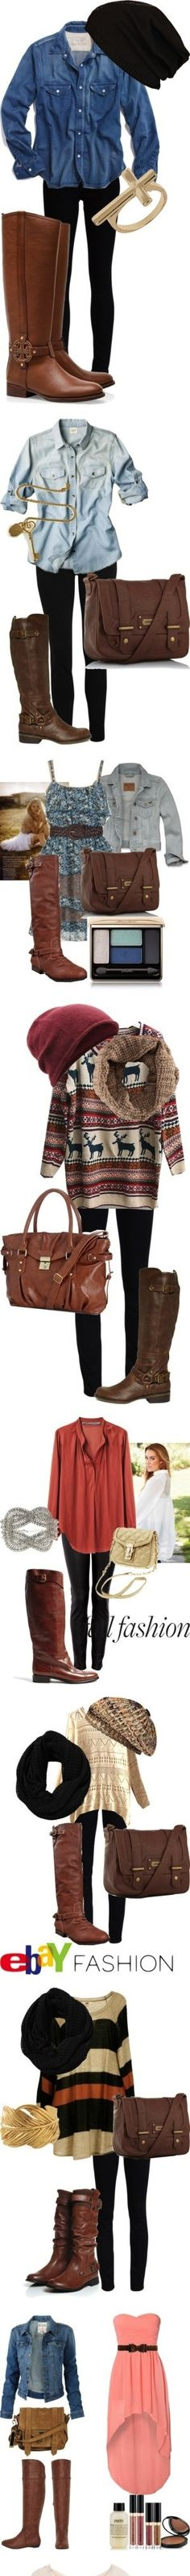 super cute outfits for fall and winter